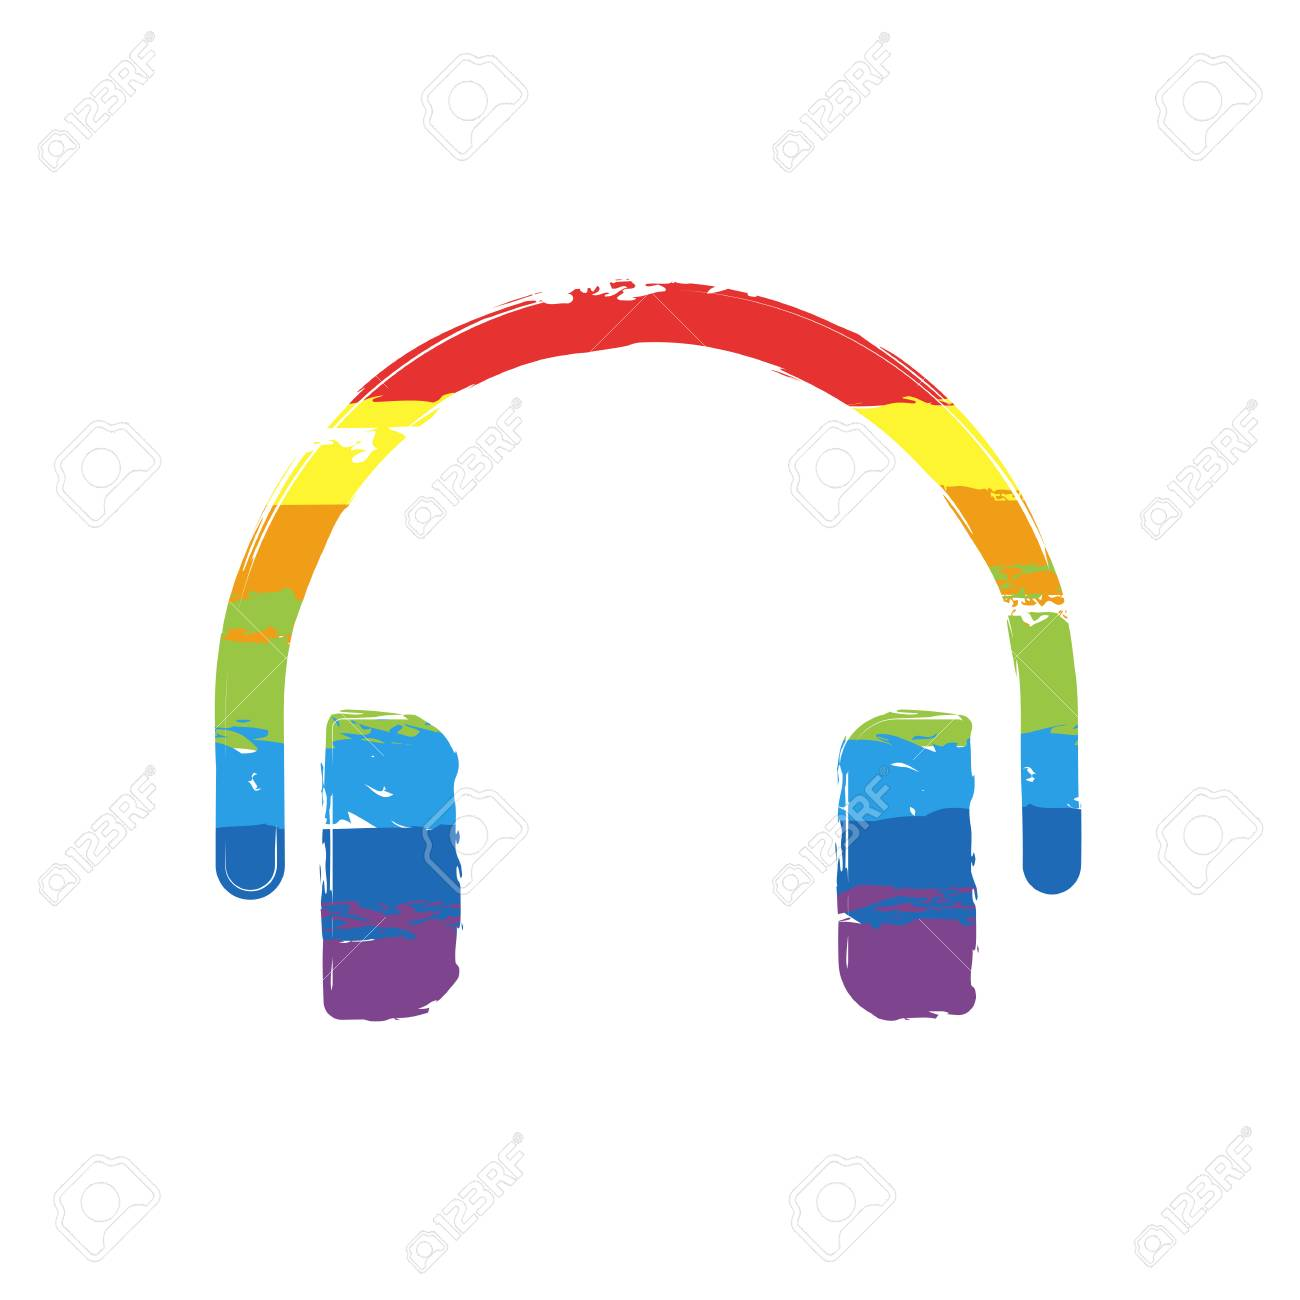 Simple headphones icon. Drawing sign with LGBT style, seven colors of rainbow (red, orange, yellow, green, blue, indigo, violet